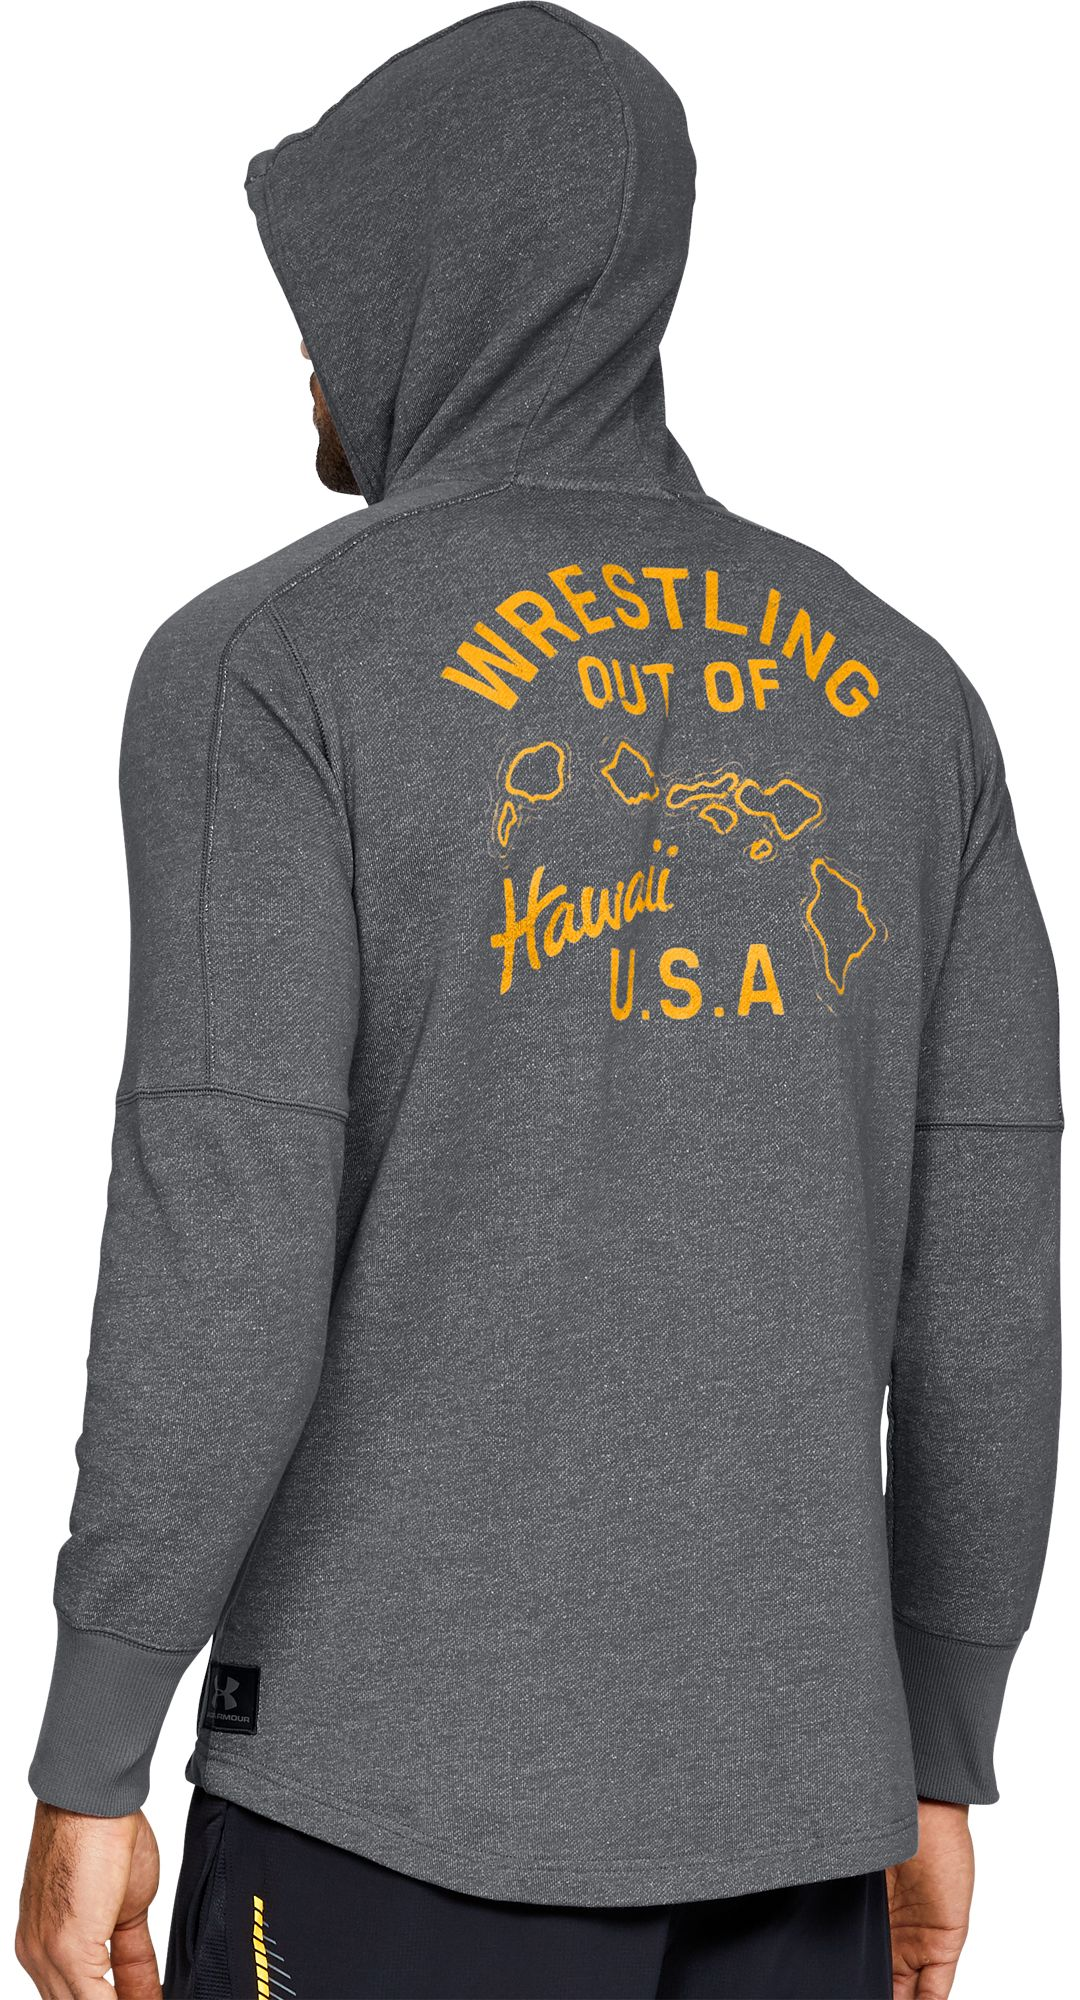 deae9f8aa8 Under Armour Men's Project Rock Hawaii USA Hoodie